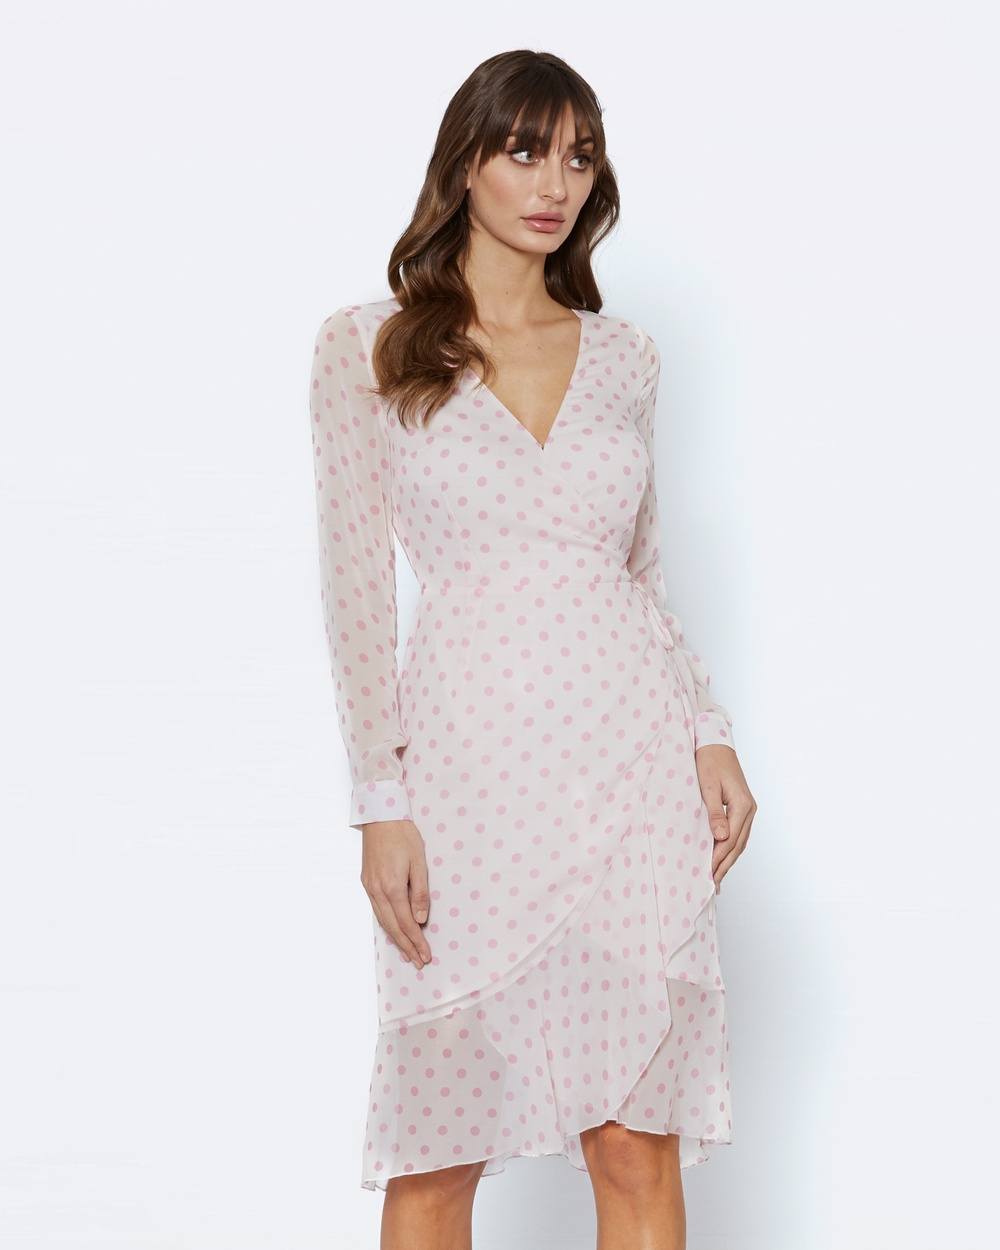 Alannah Hill Dusk To Dawn Dress Printed Dresses Pink Dusk To Dawn Dress